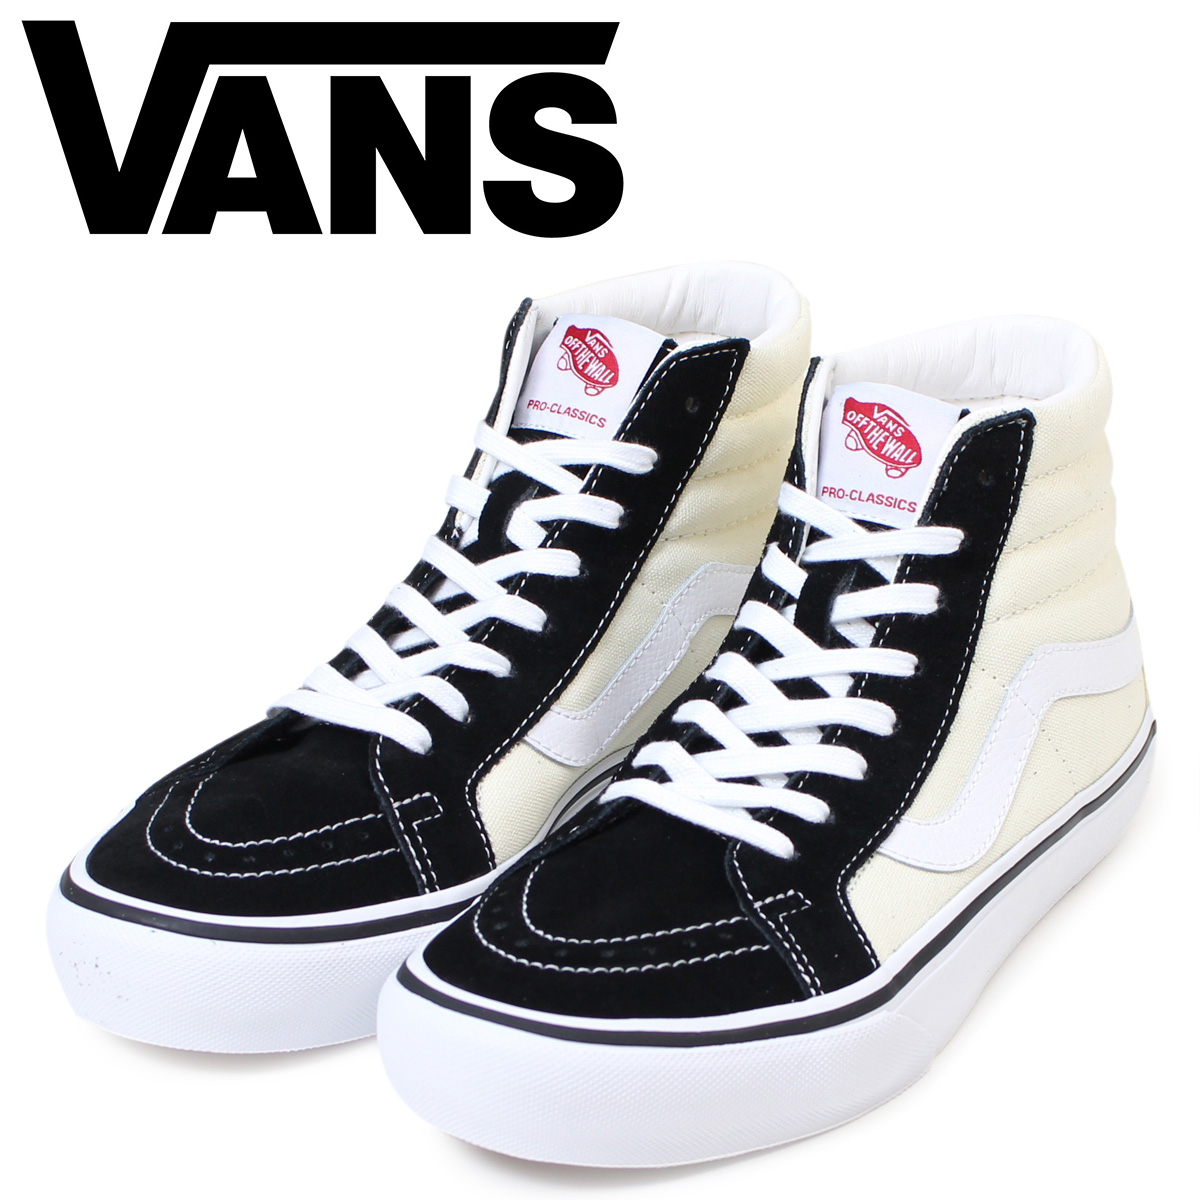 4e4cddf2f5 VANS SK8-HI vans sneakers men station wagons higher frequency elimination  REISSUE PRO VN000VHGJ6G shoes black X white  1 25 Shinnyu load